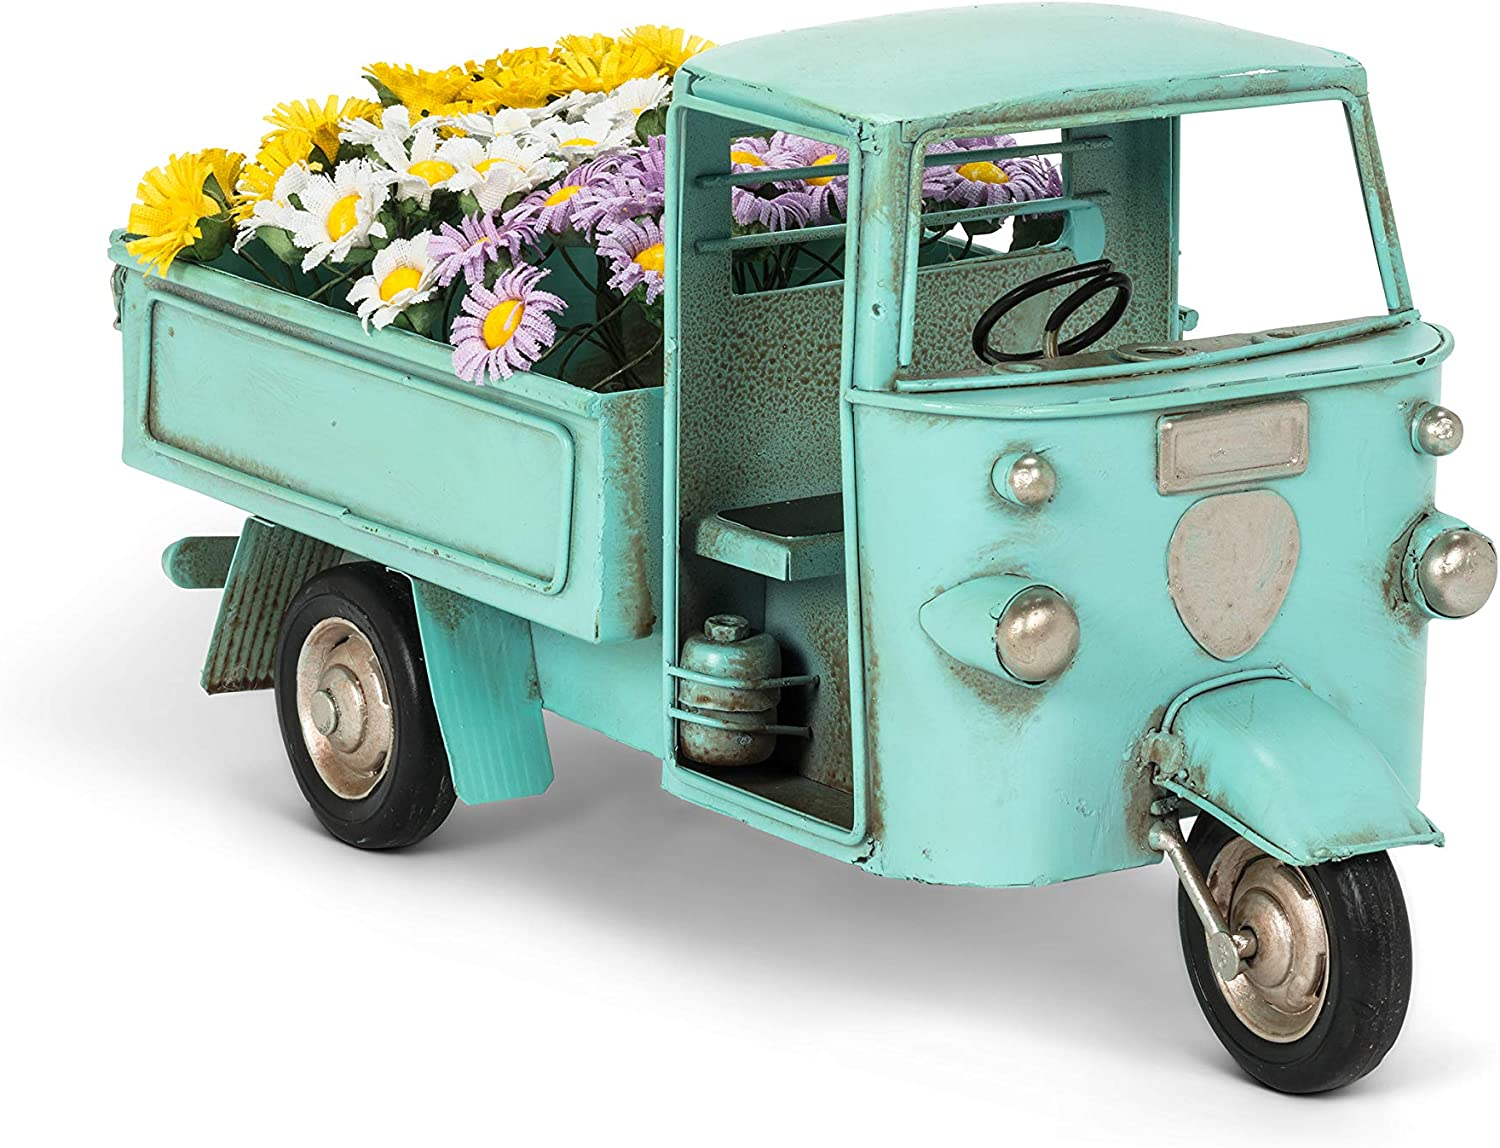 Abbott Collection 27-RIDEAWAY-996 Large 3 Wheel with Truck Flowe Over item handling ☆ Genuine